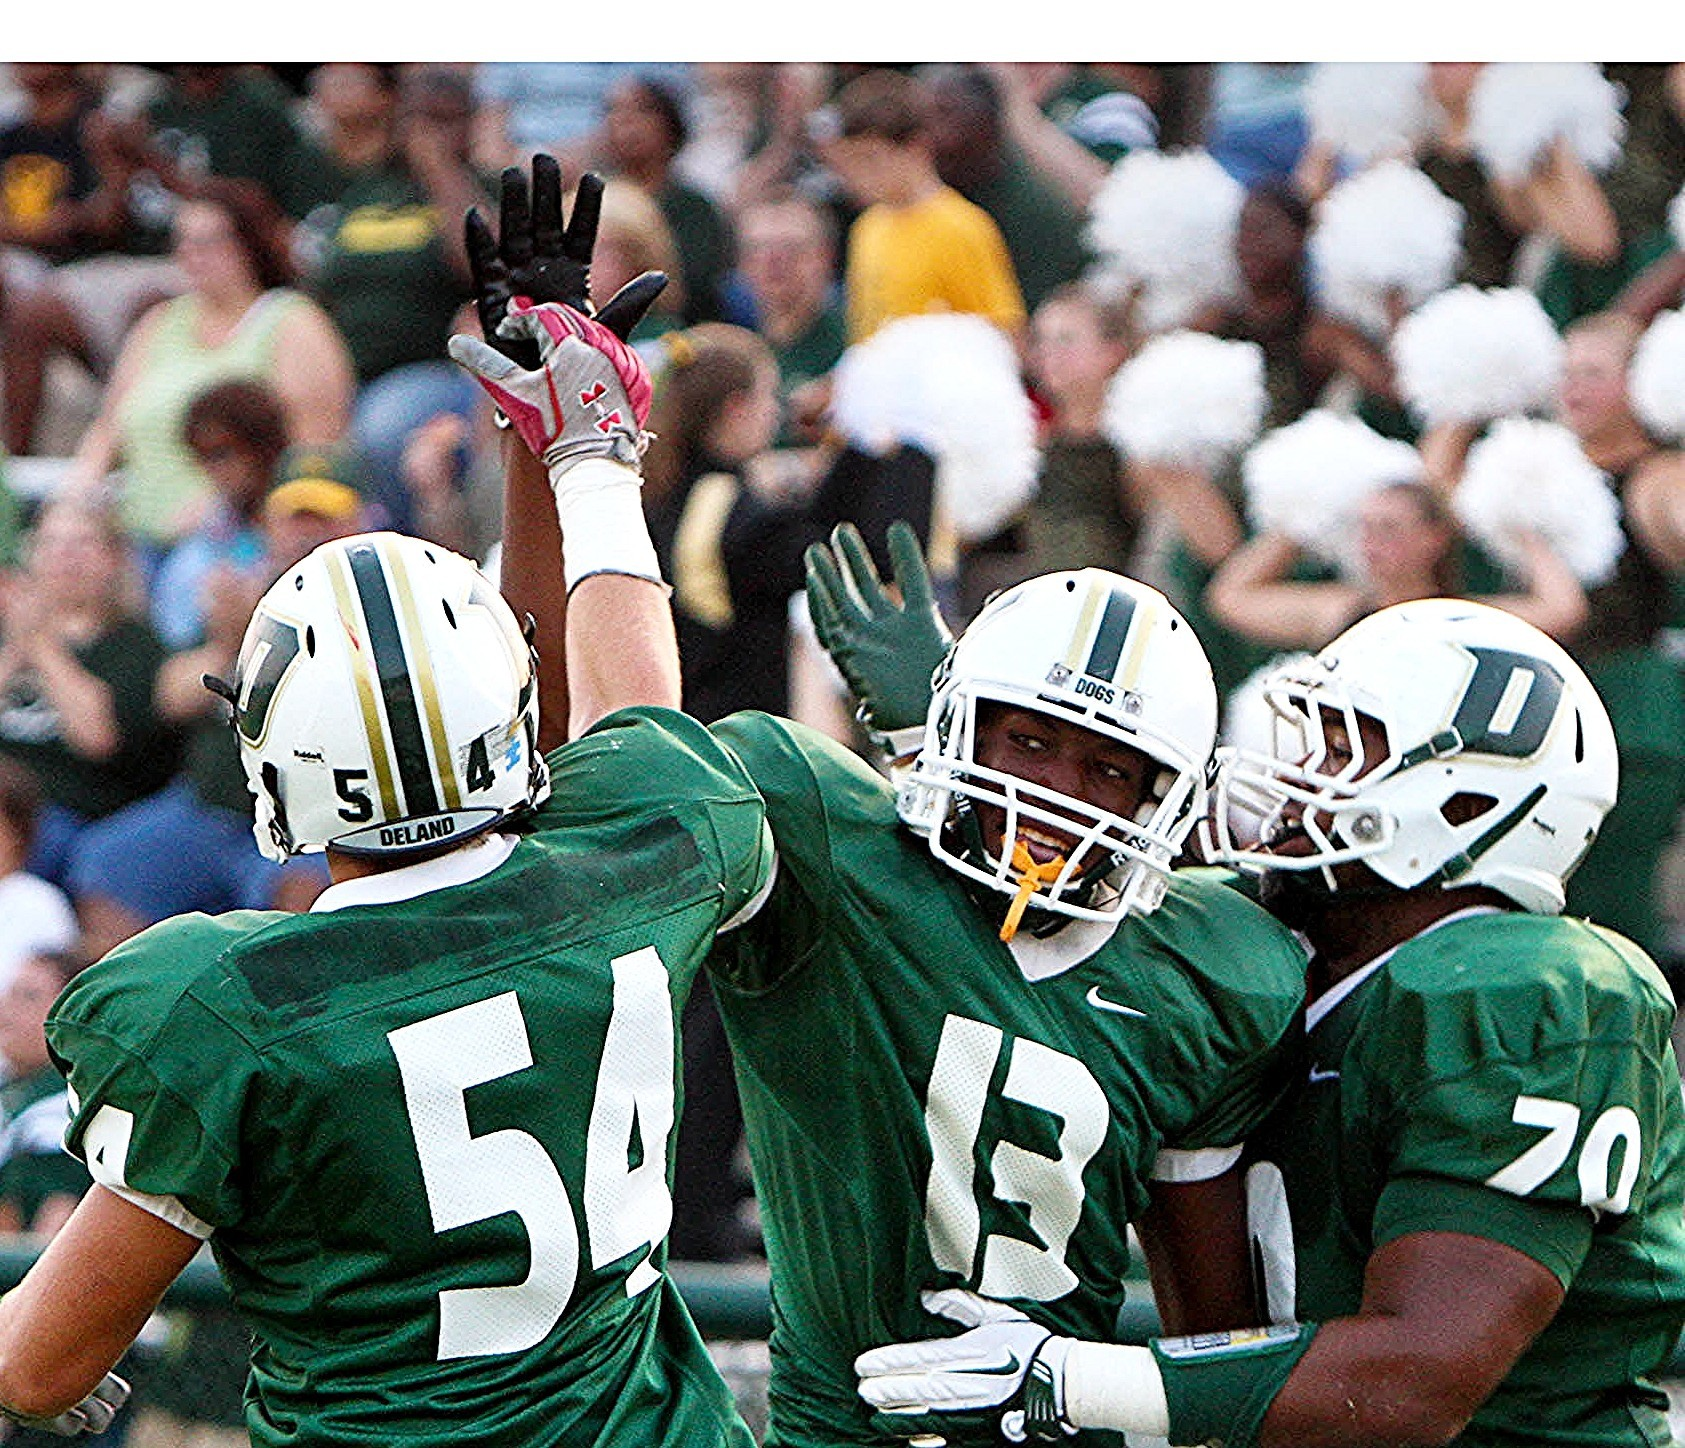 DeLand WR Dantwuan O'Neal is congratulated by teammates after catching a touchdown pass last season. (September 16, 2011)